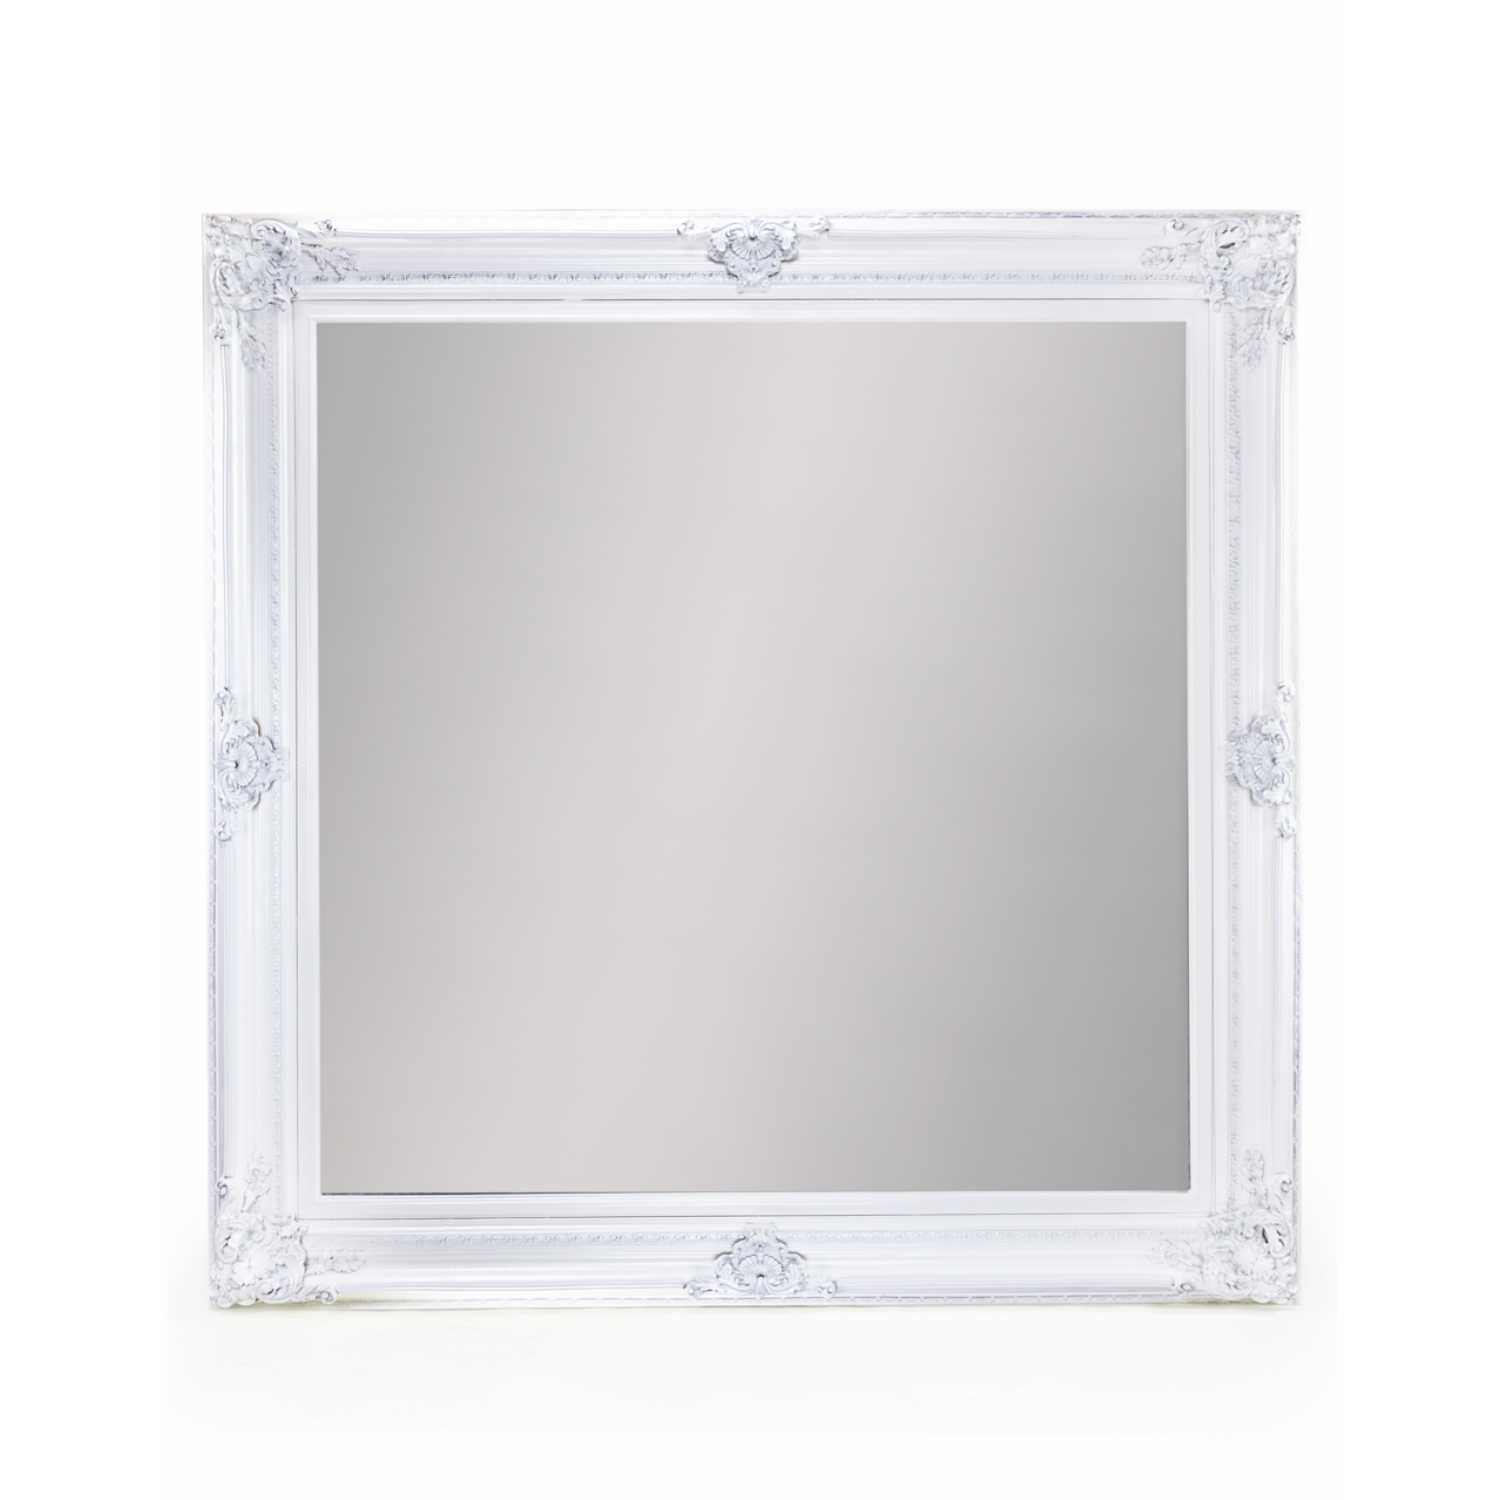 Extra large white square traditional framed wall mirror for Extra large mirrors